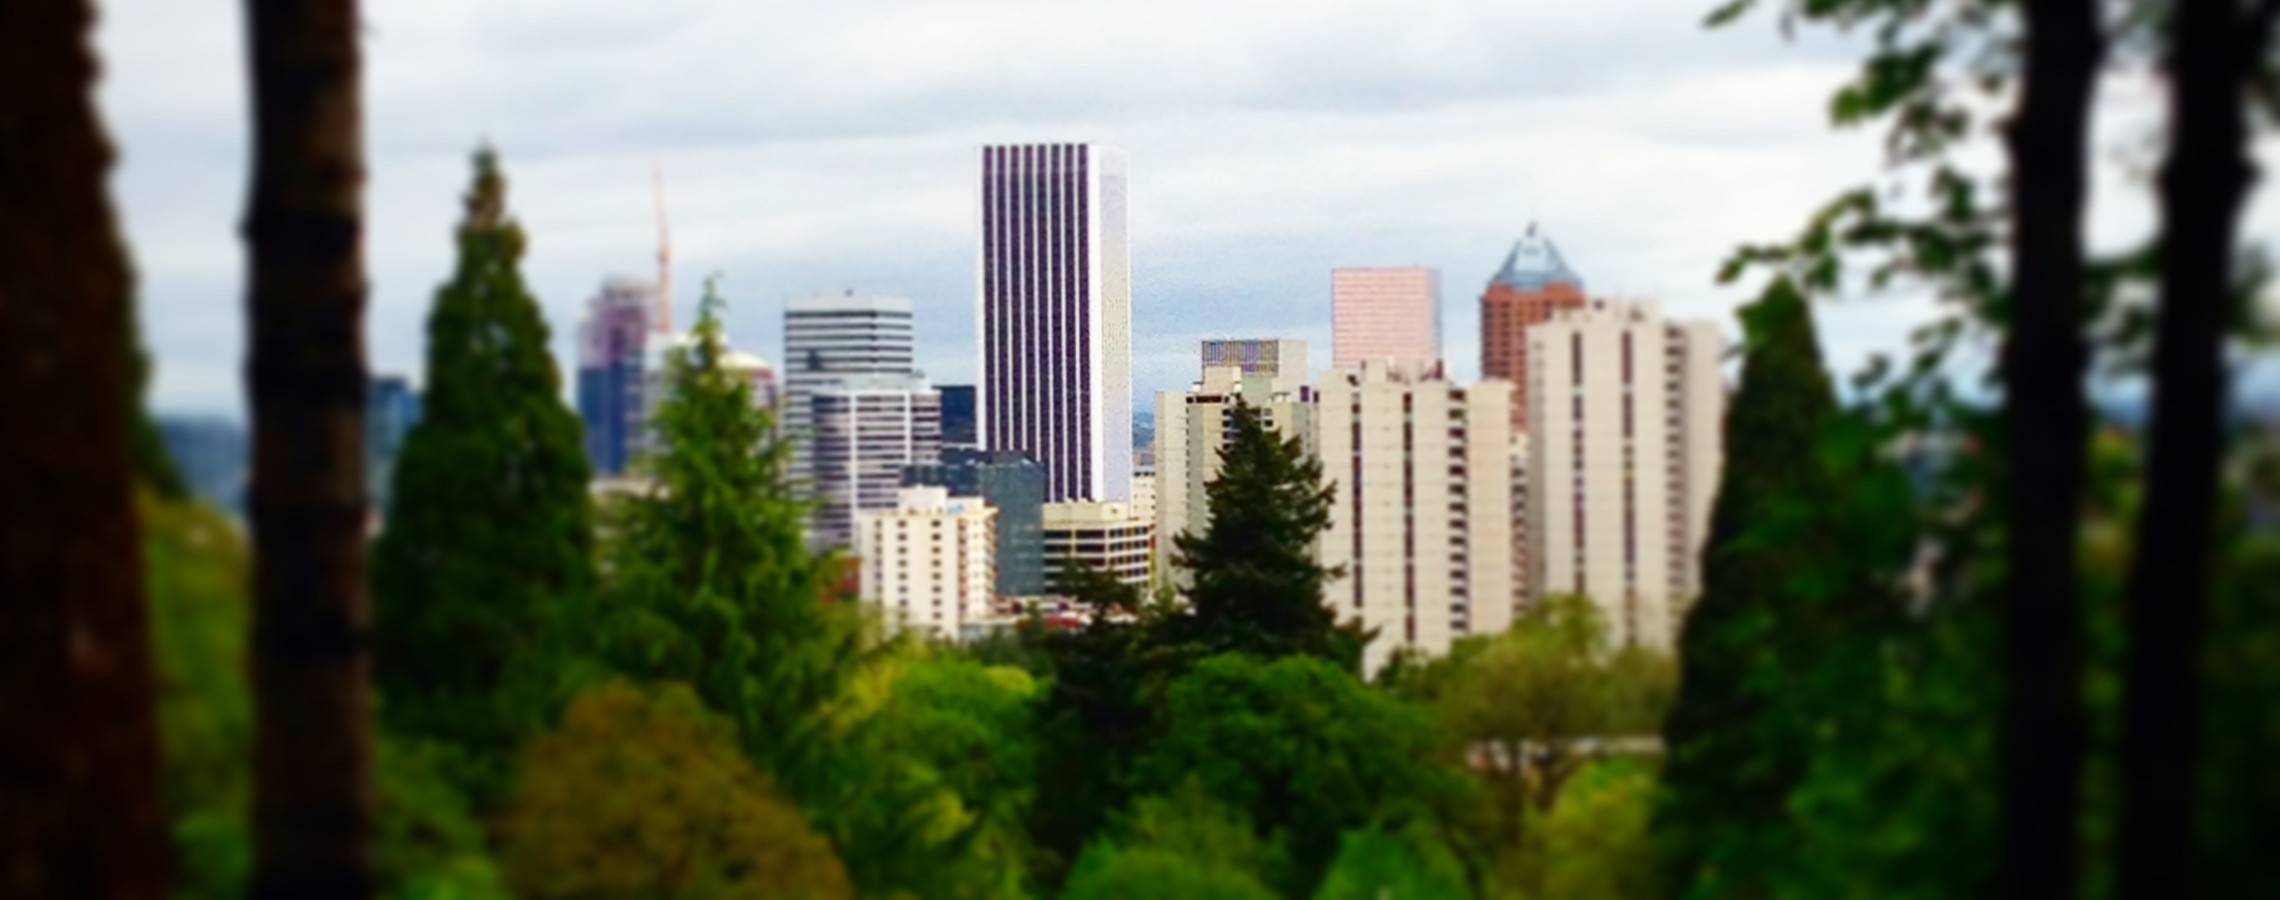 View of Portland through the trees